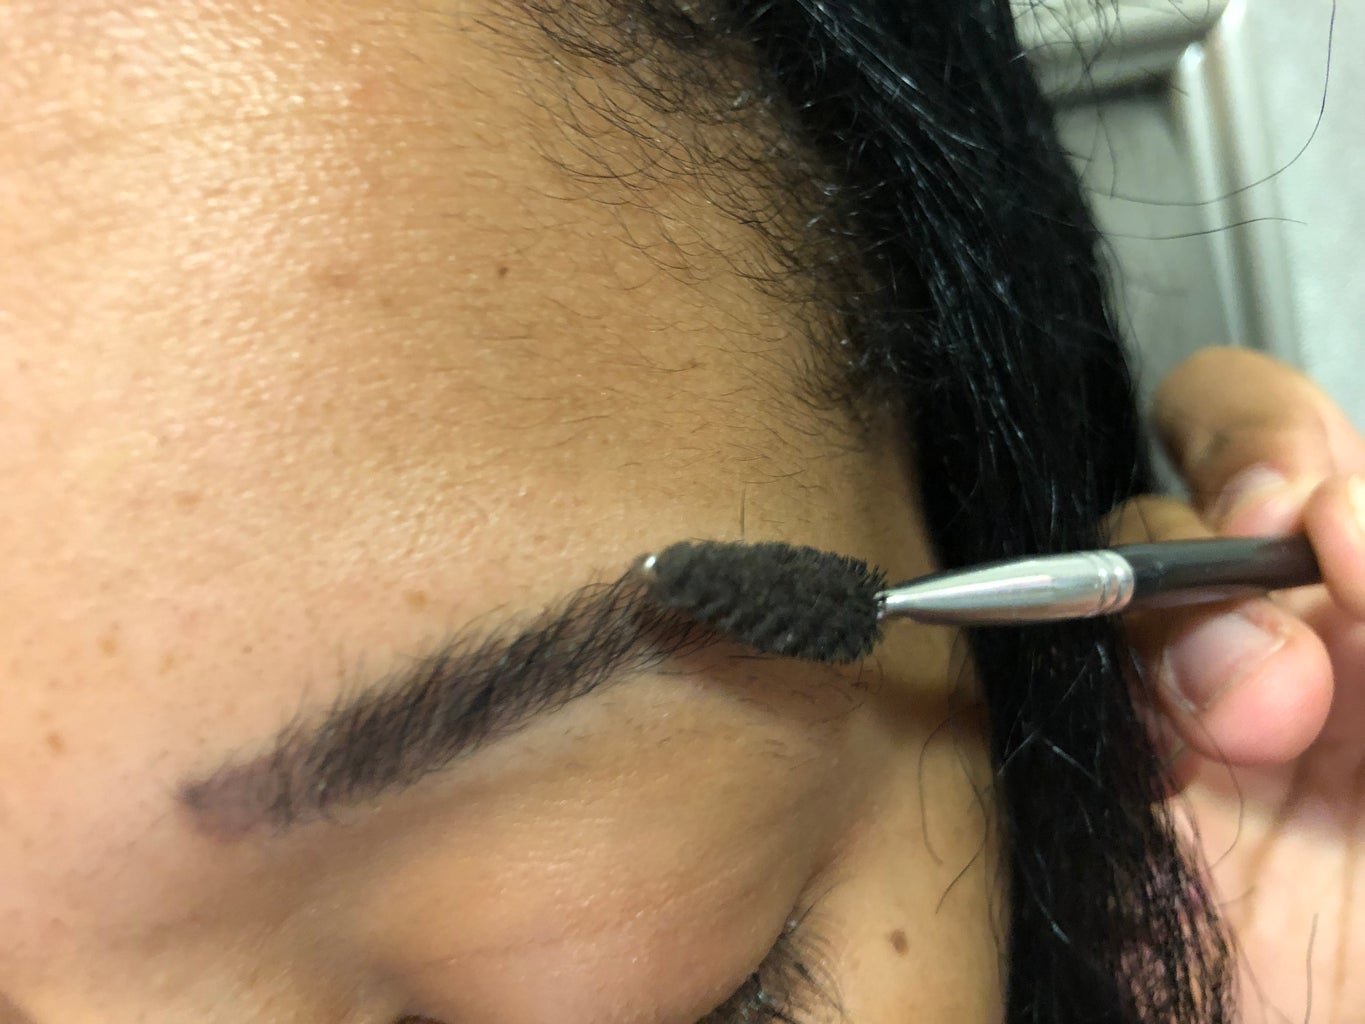 Getting the Eyebrows Ready